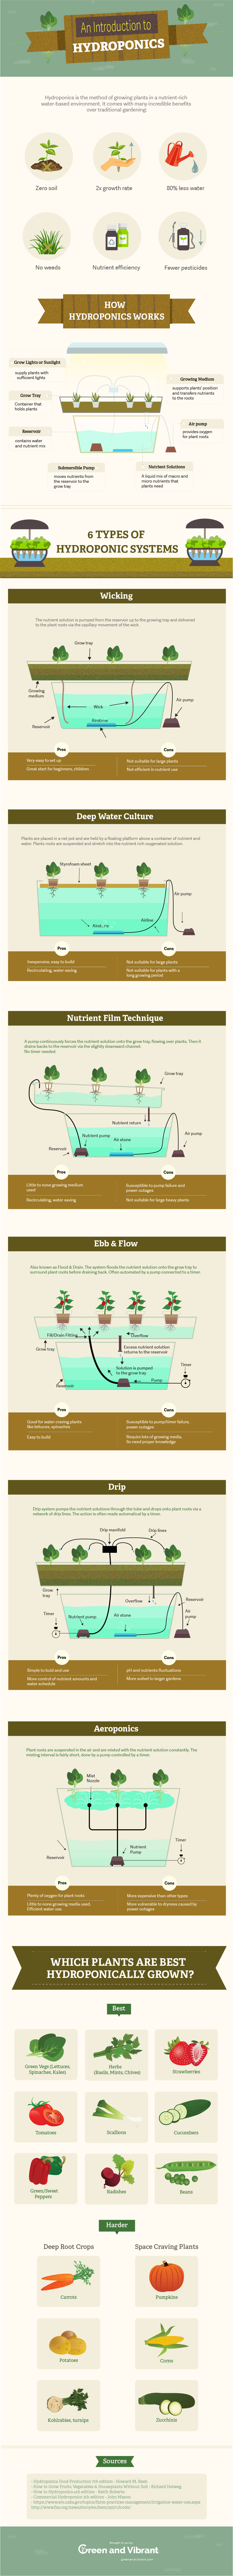 hydroponic-gardening-infographic.png